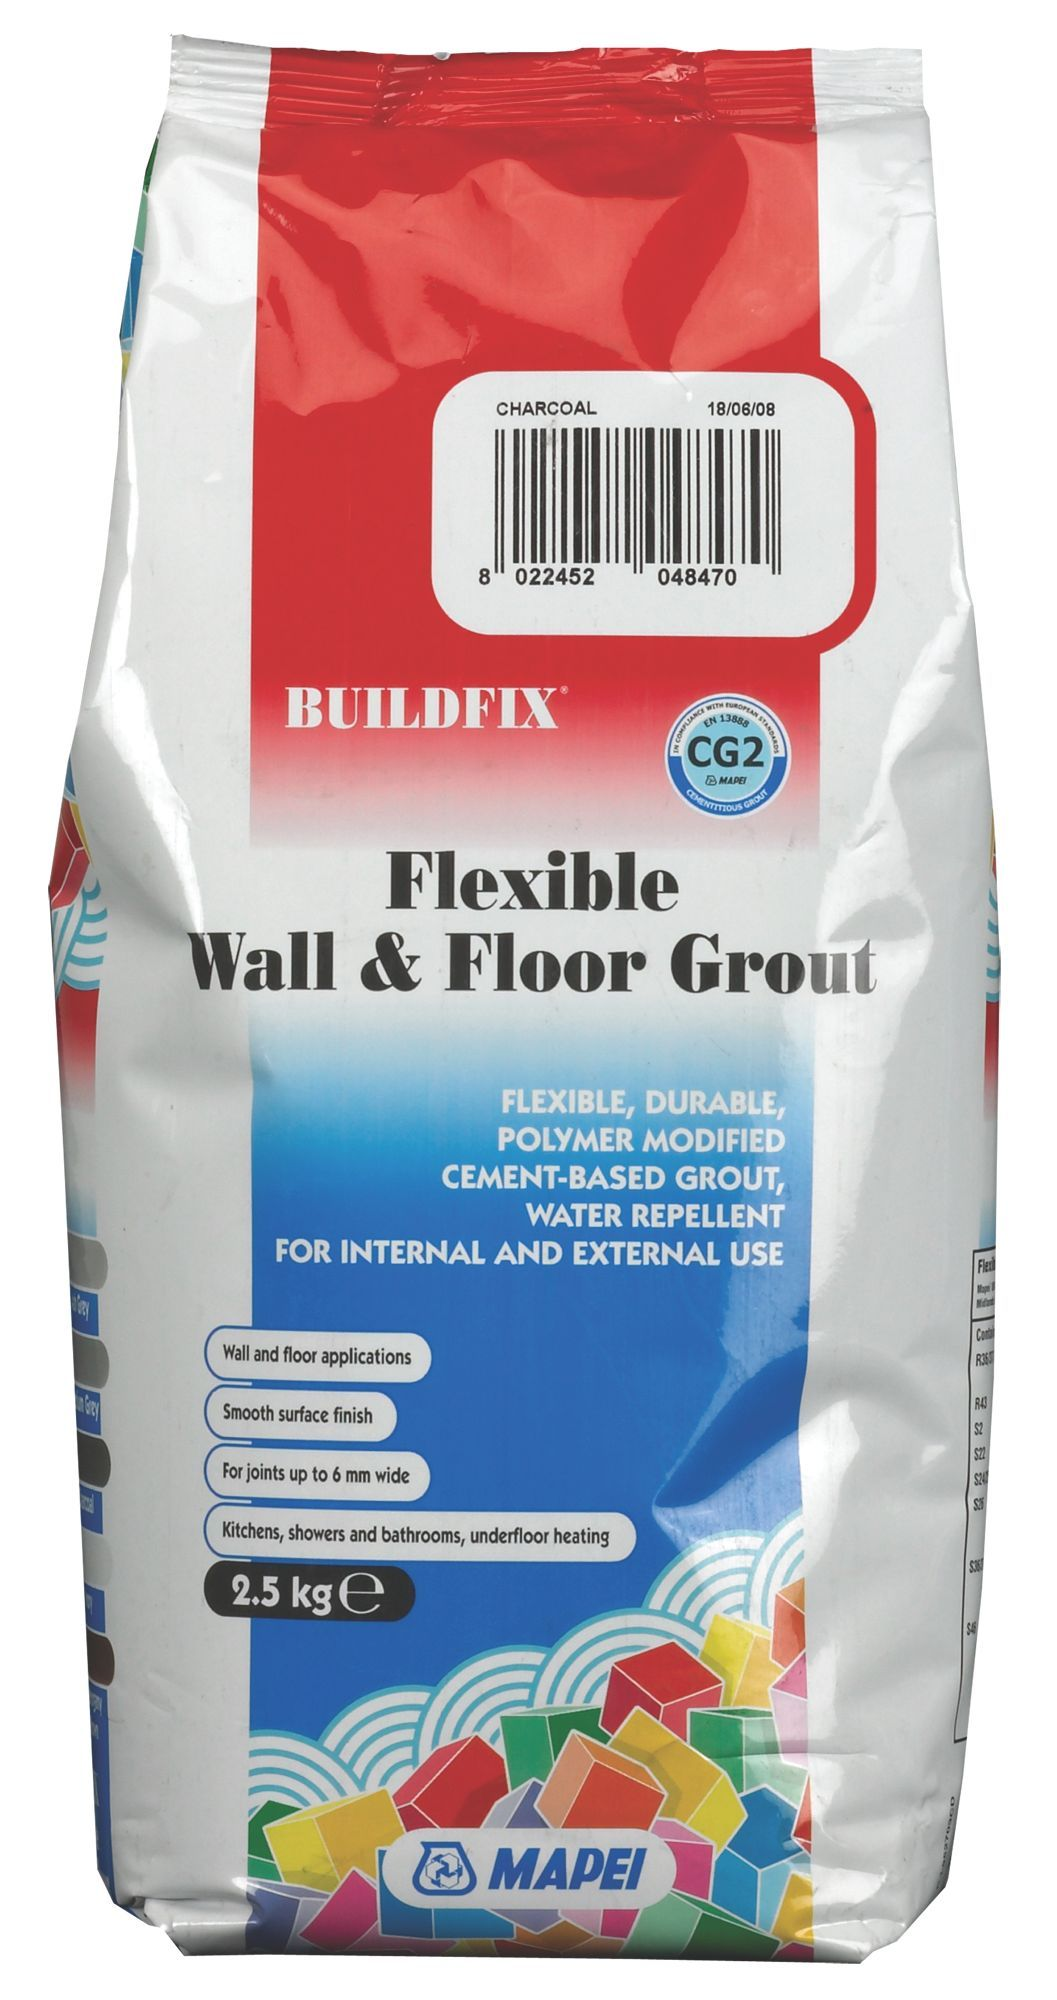 Mapei Flexible Charcoal Wall & Floor Grout (W)2 5kg | Departments